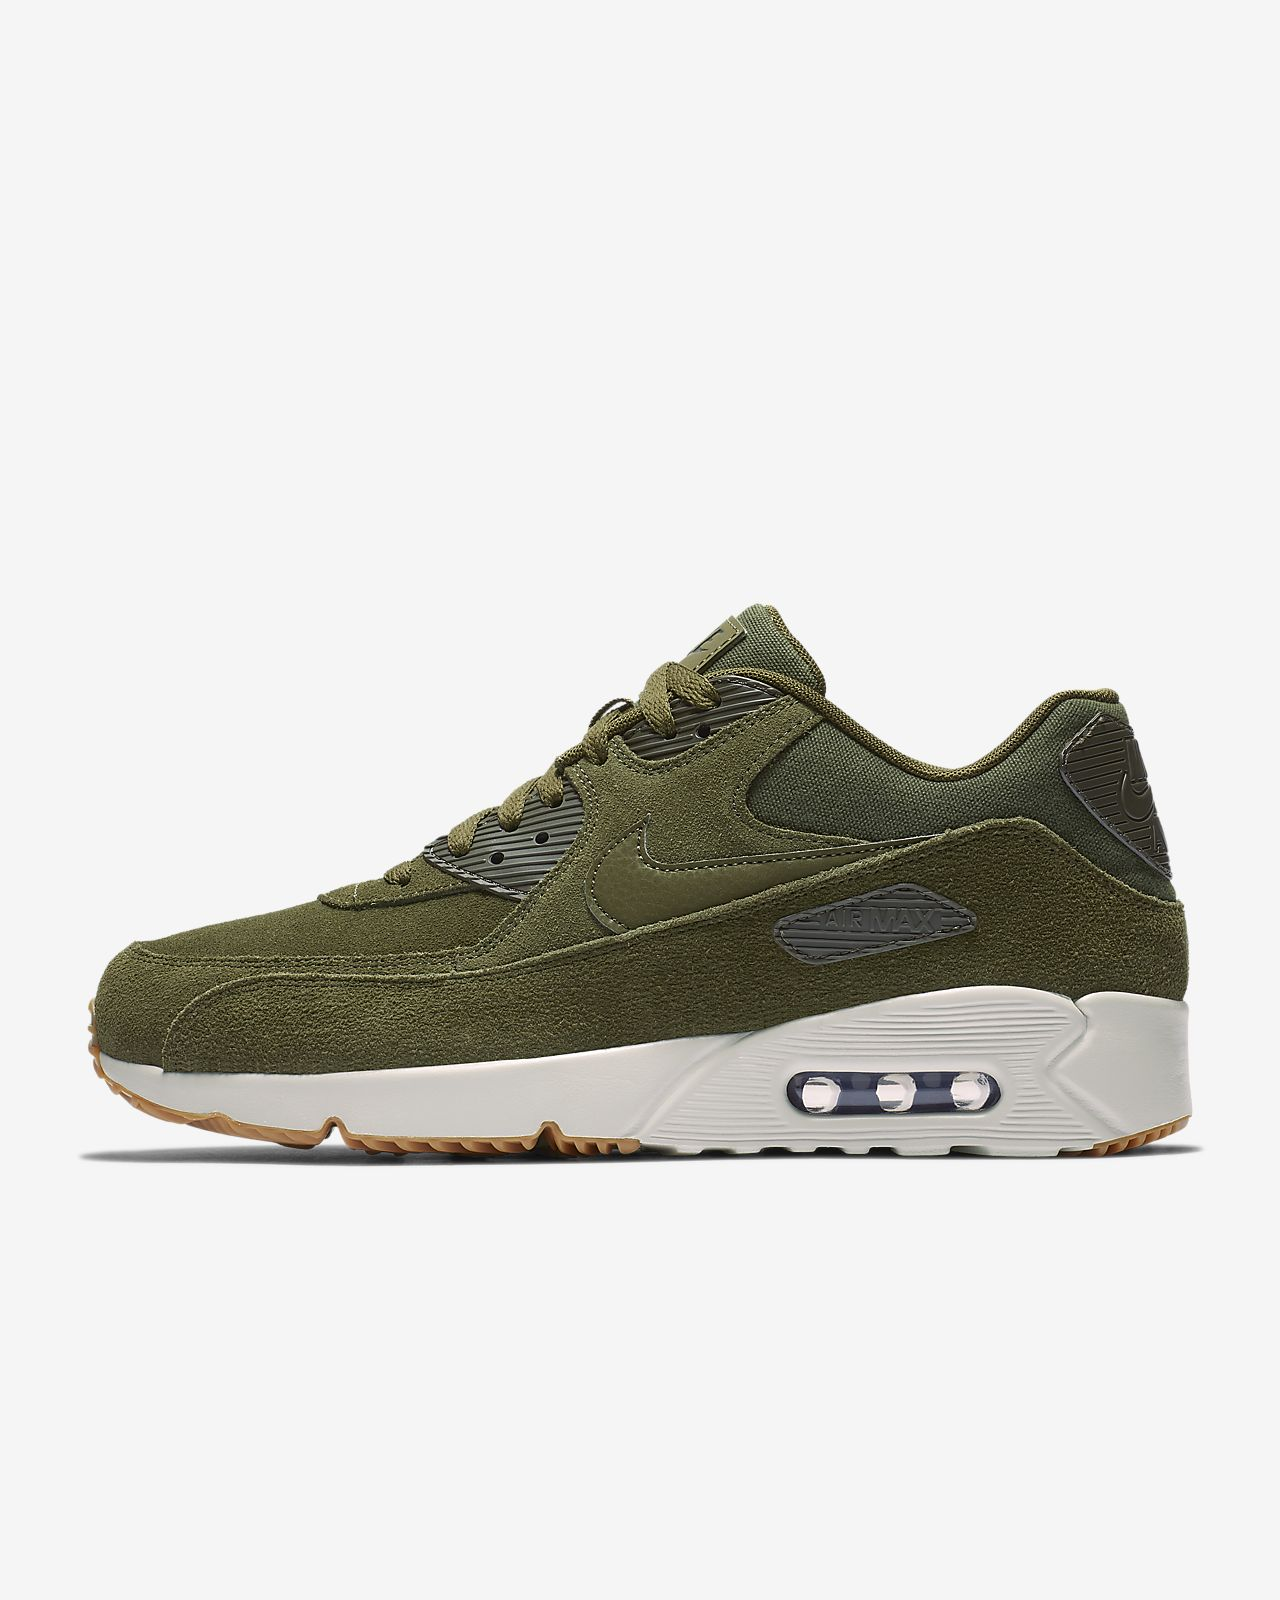 wholesale dealer 959eb 6dfb6 ... Nike Air Max 90 Ultra 2.0 Men s Shoe